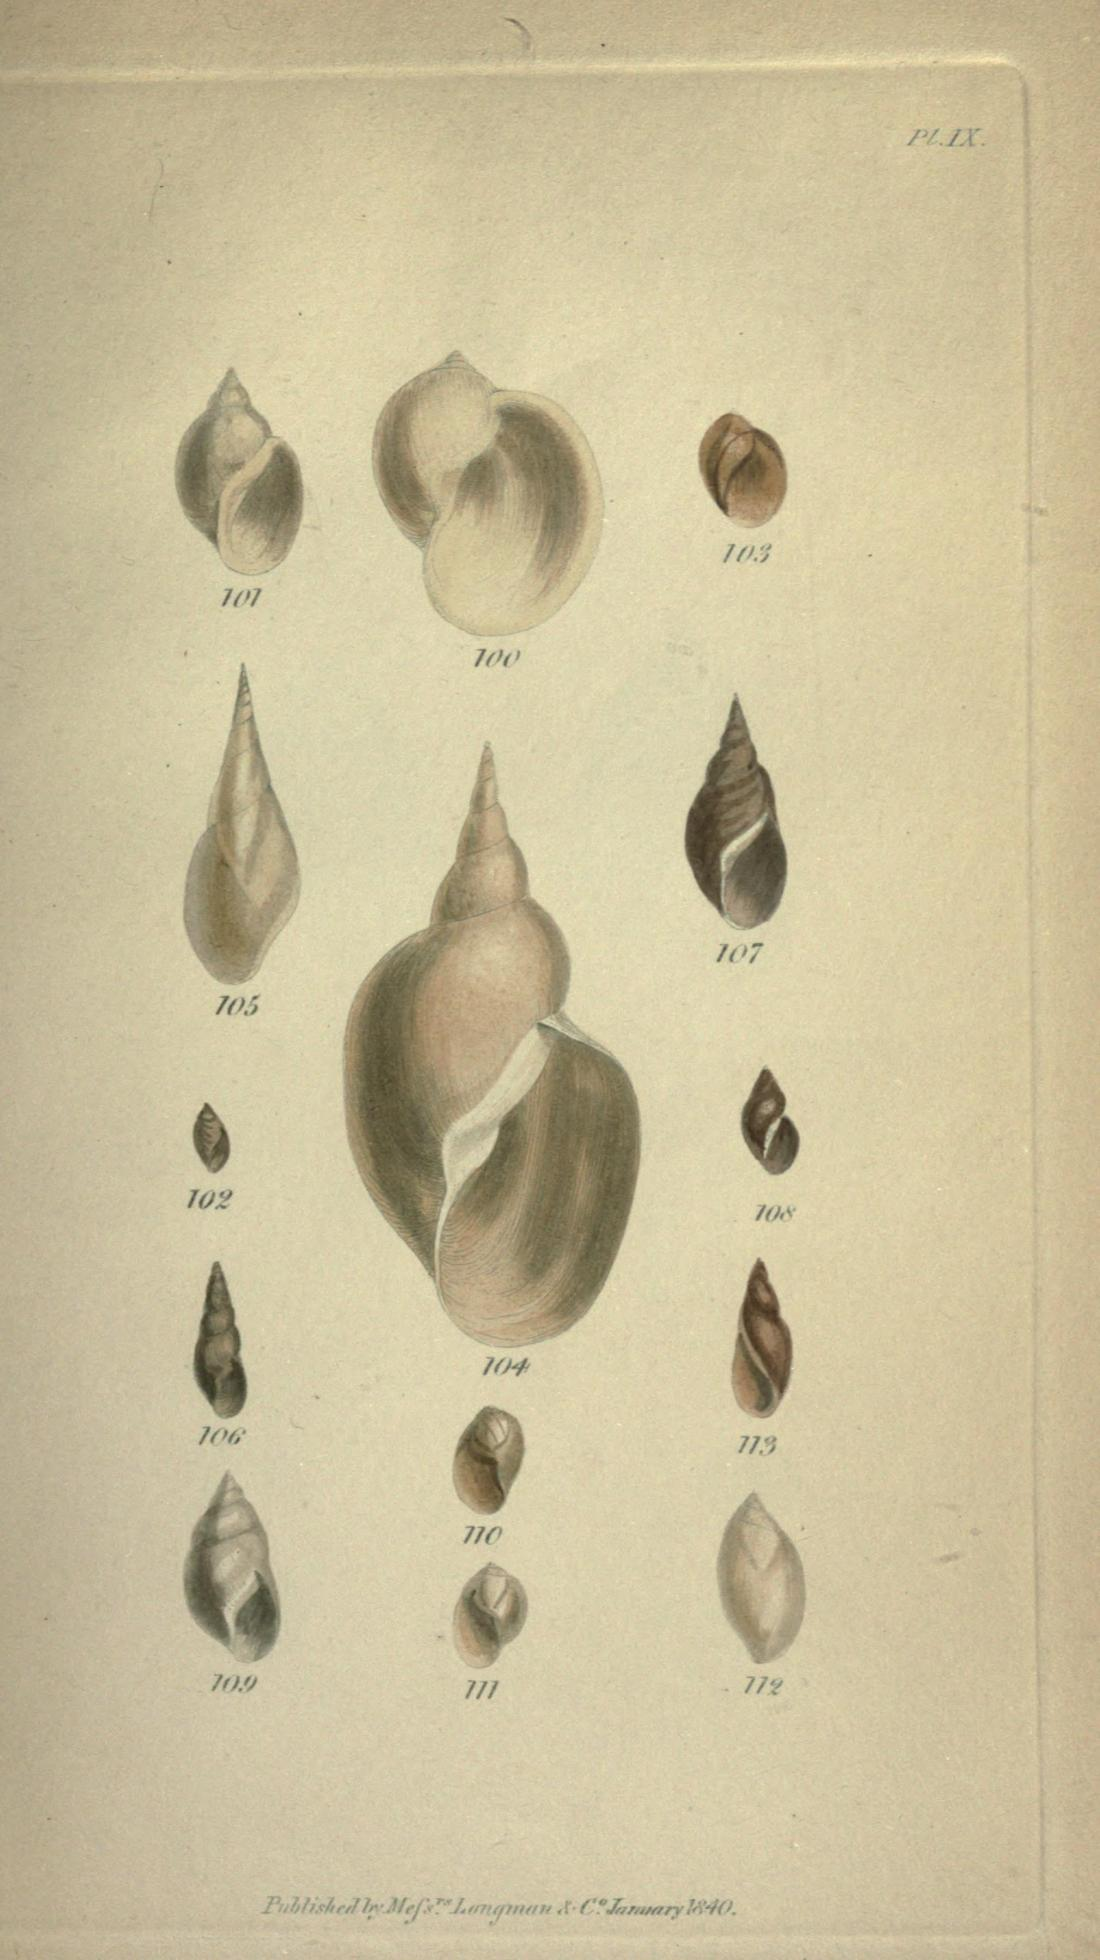 Plate IX, figures 101 through 112. Page 343.